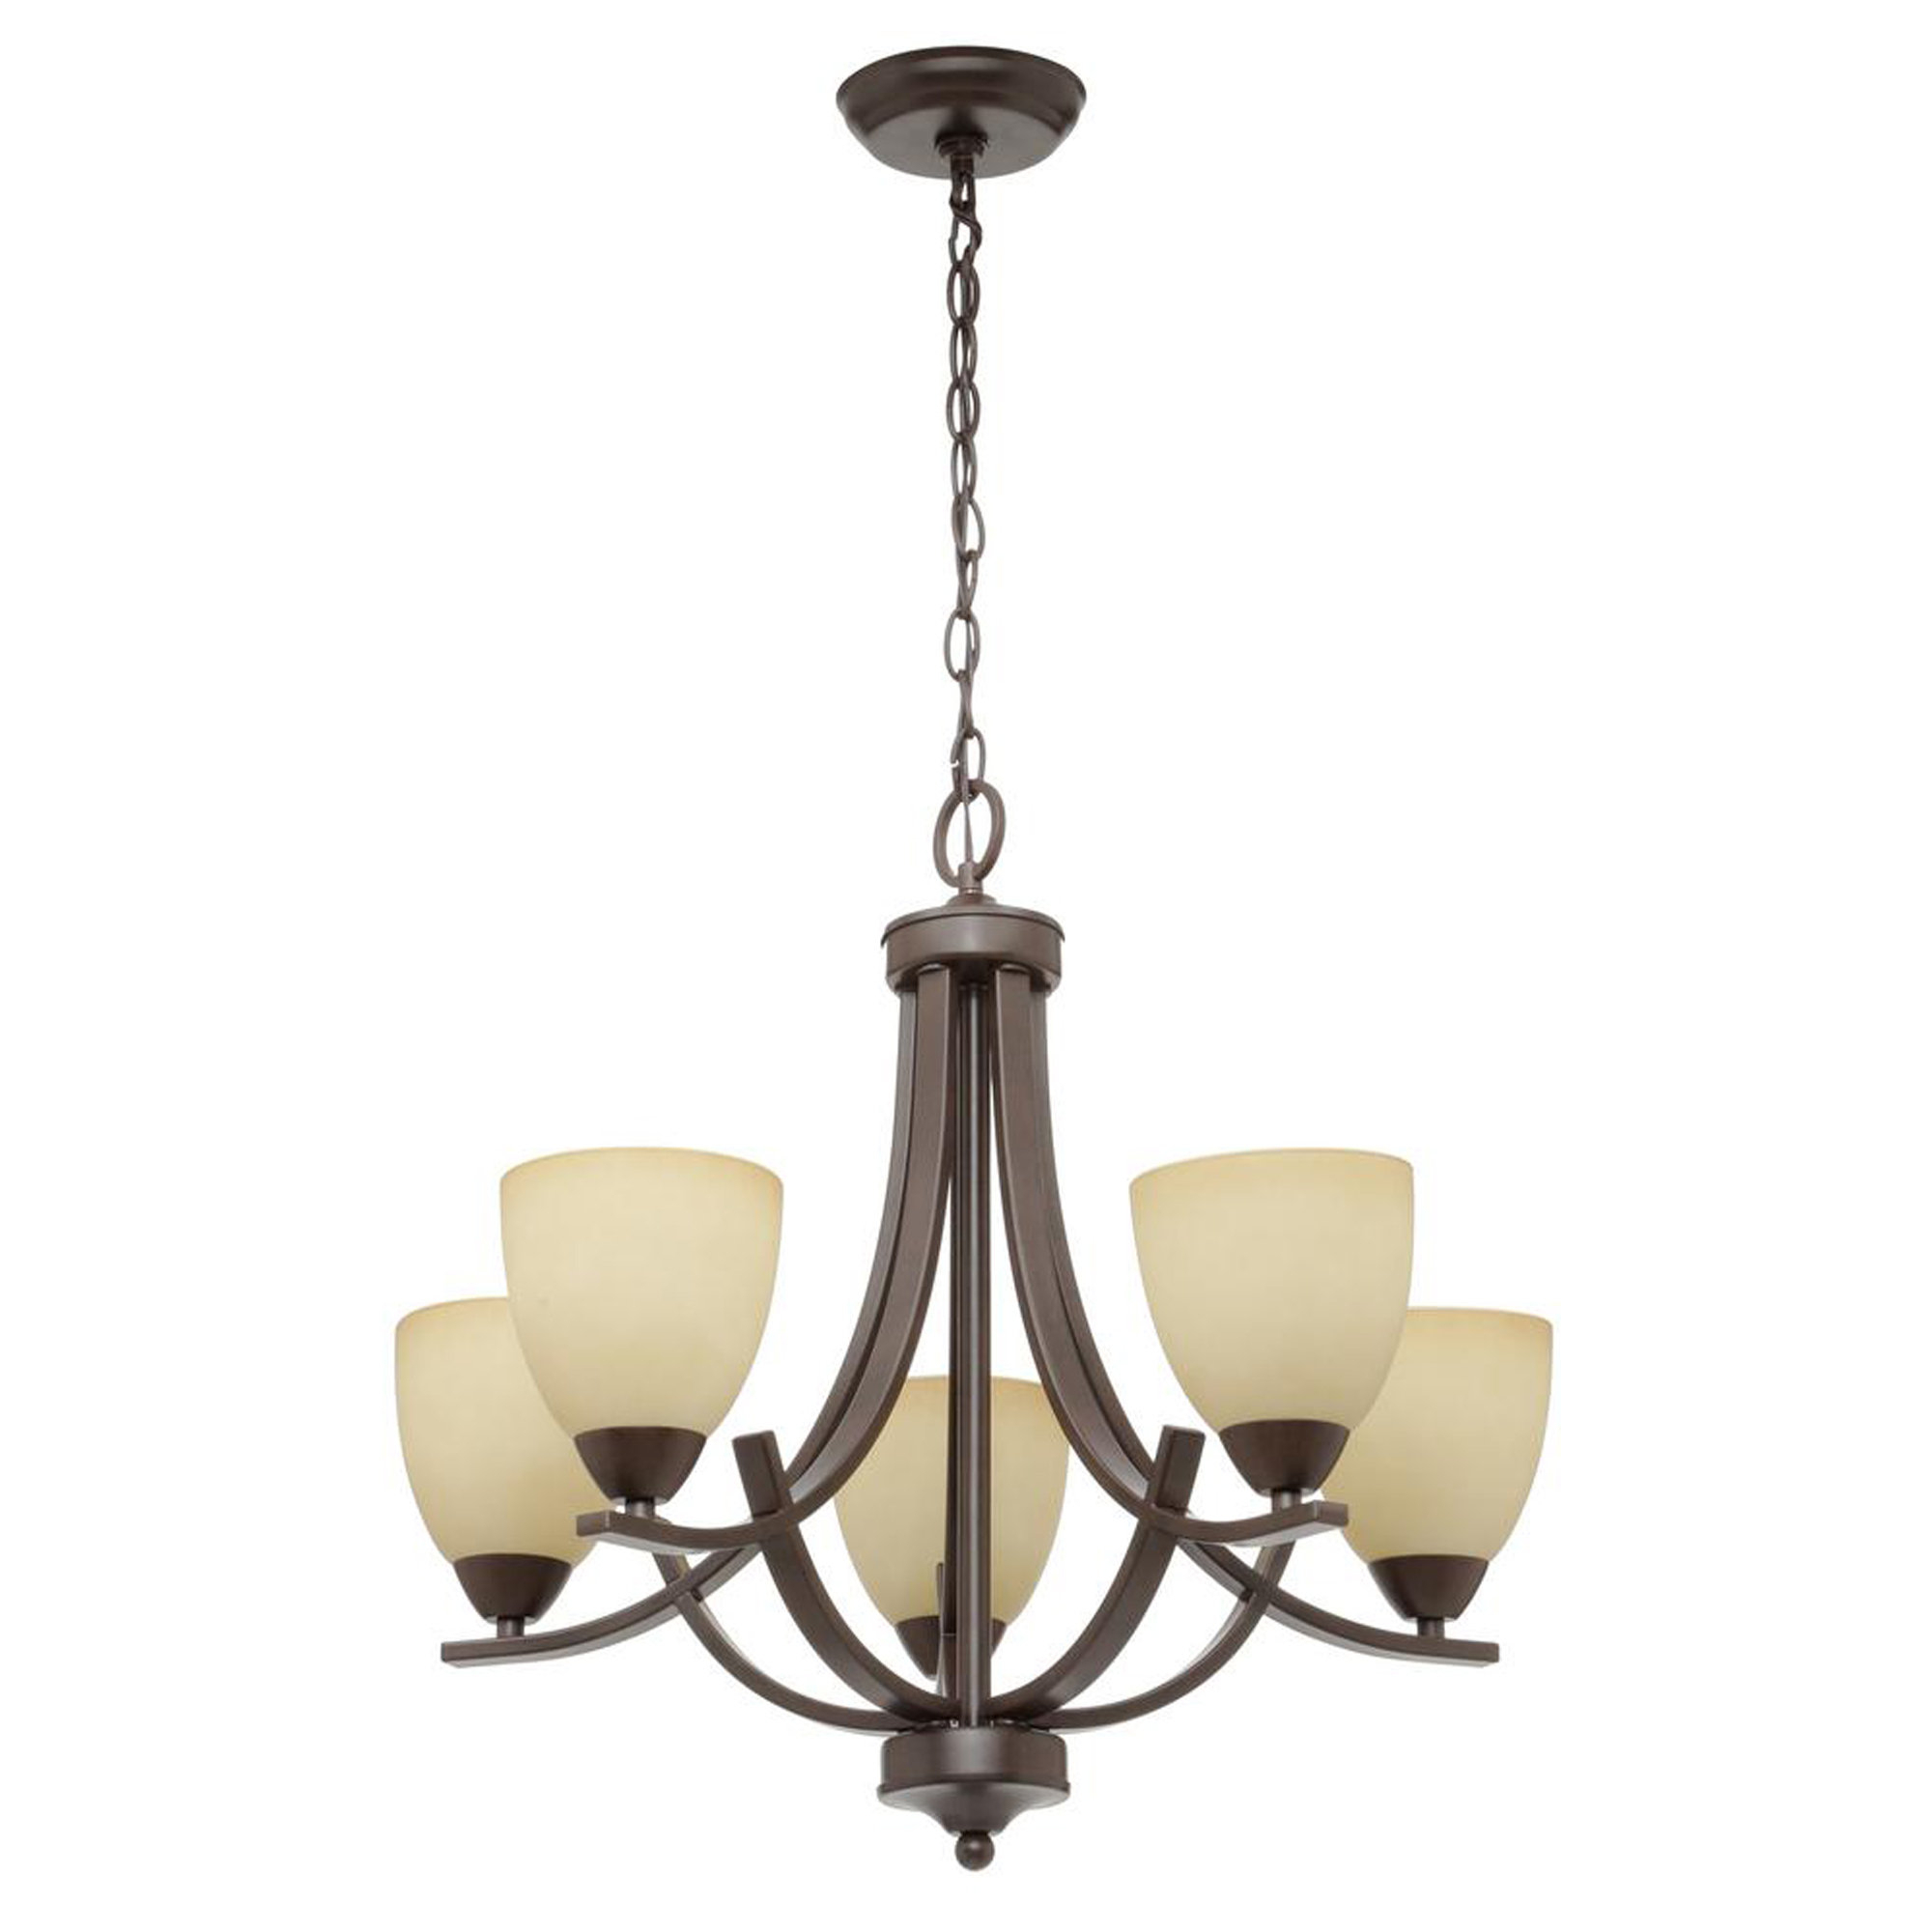 Crofoot 5 Light Shaded Chandelier With Regard To Best And Newest Suki 5 Light Shaded Chandeliers (View 4 of 25)